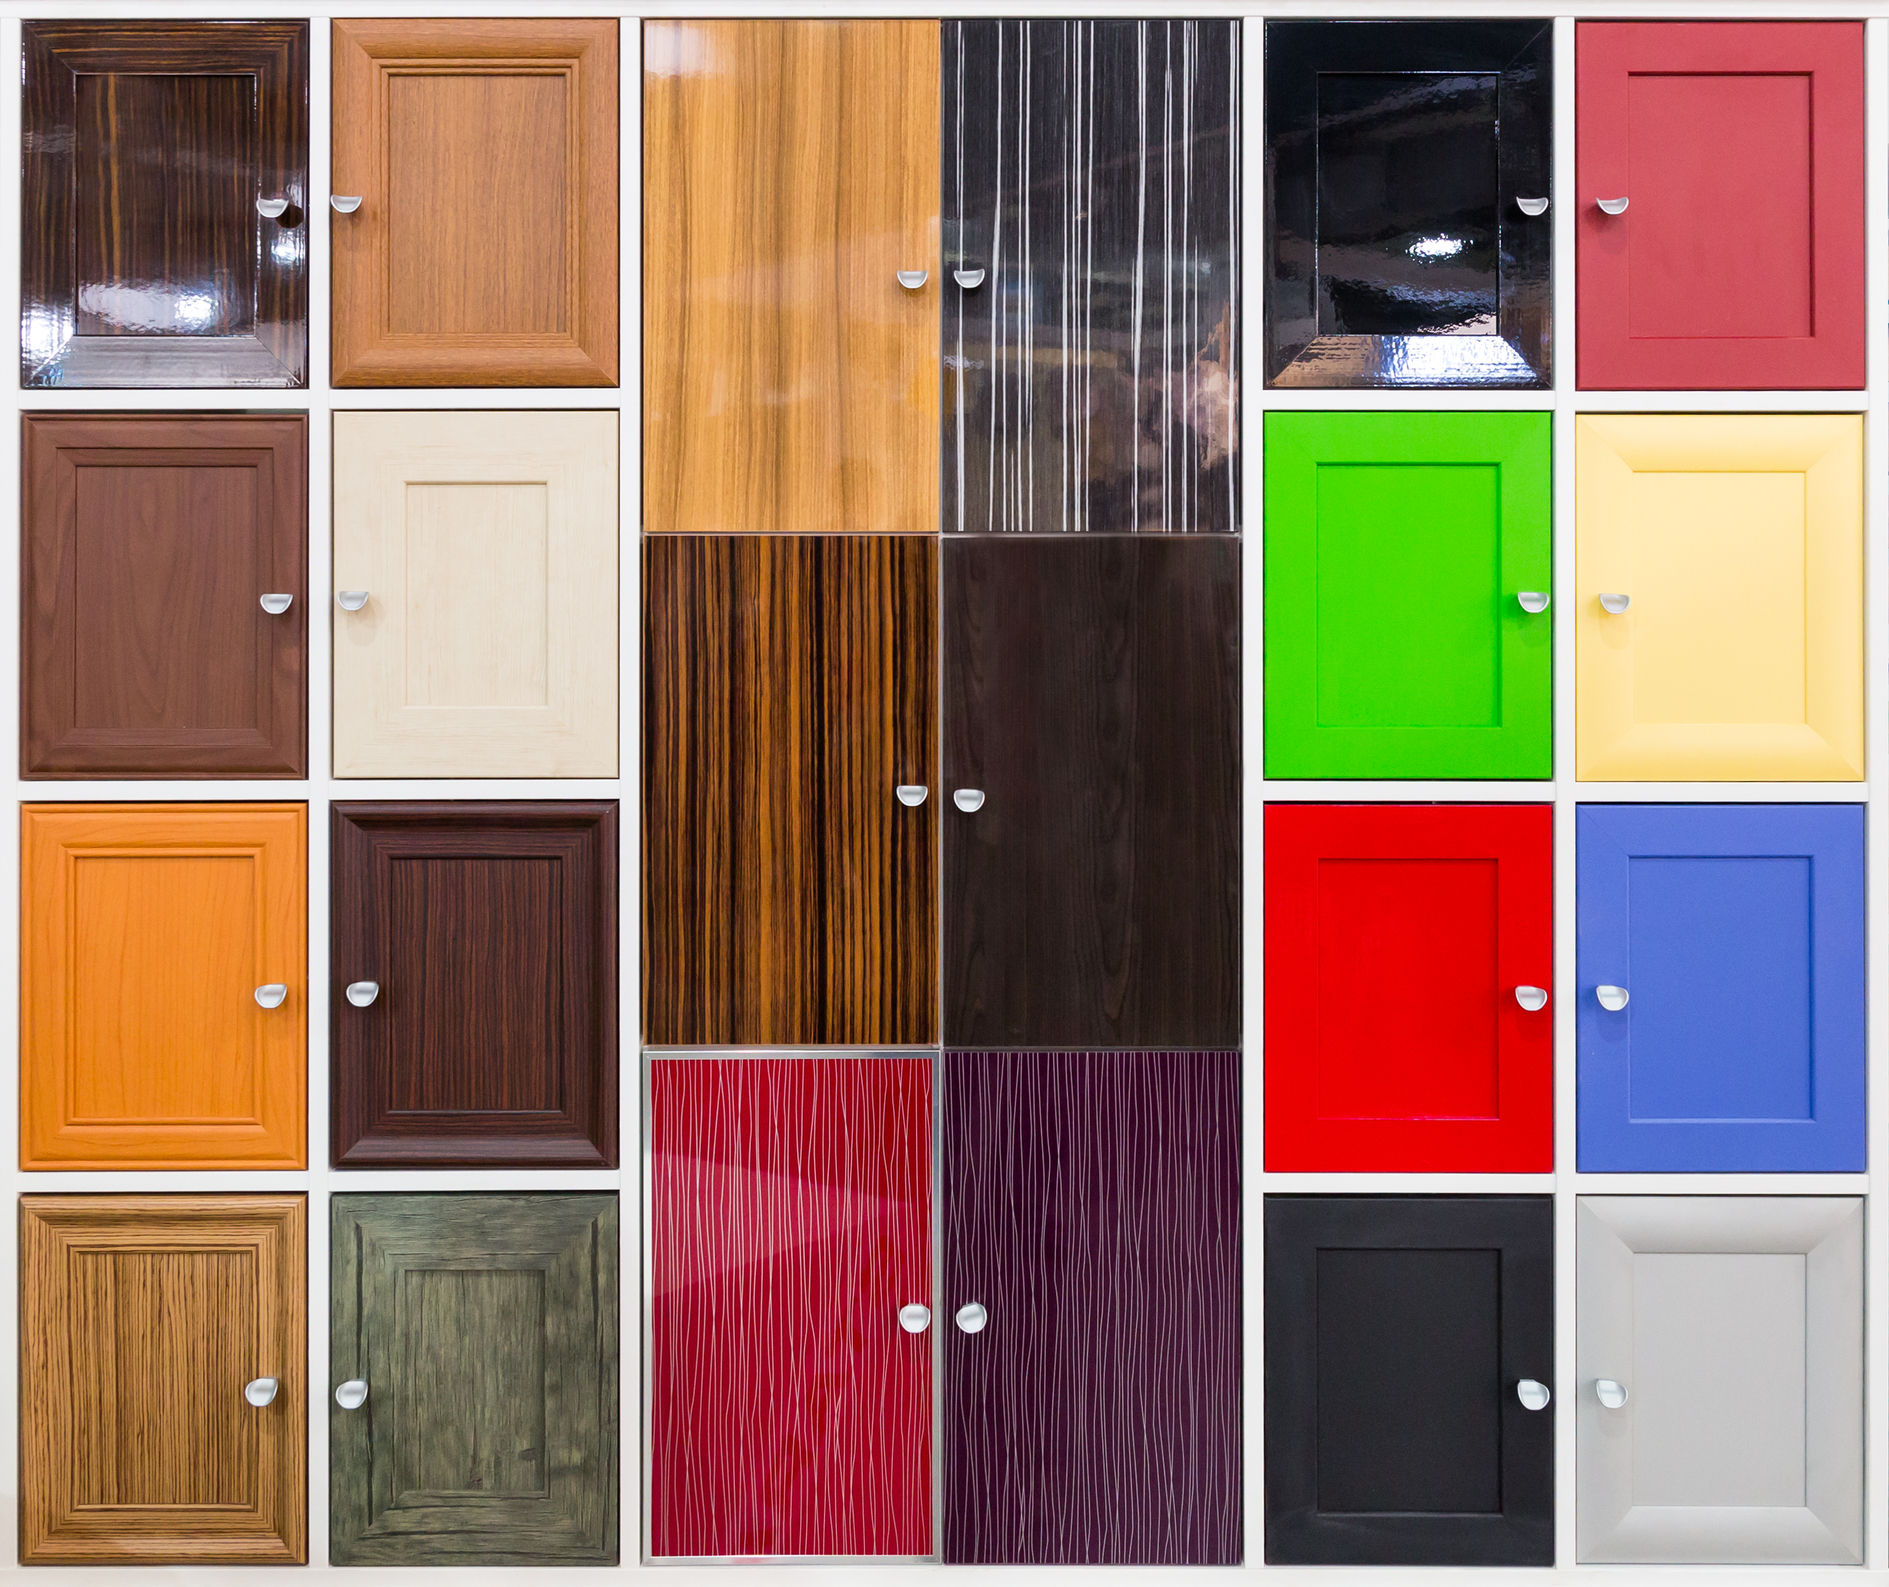 Detail of colorful cabinet doors with nice handles